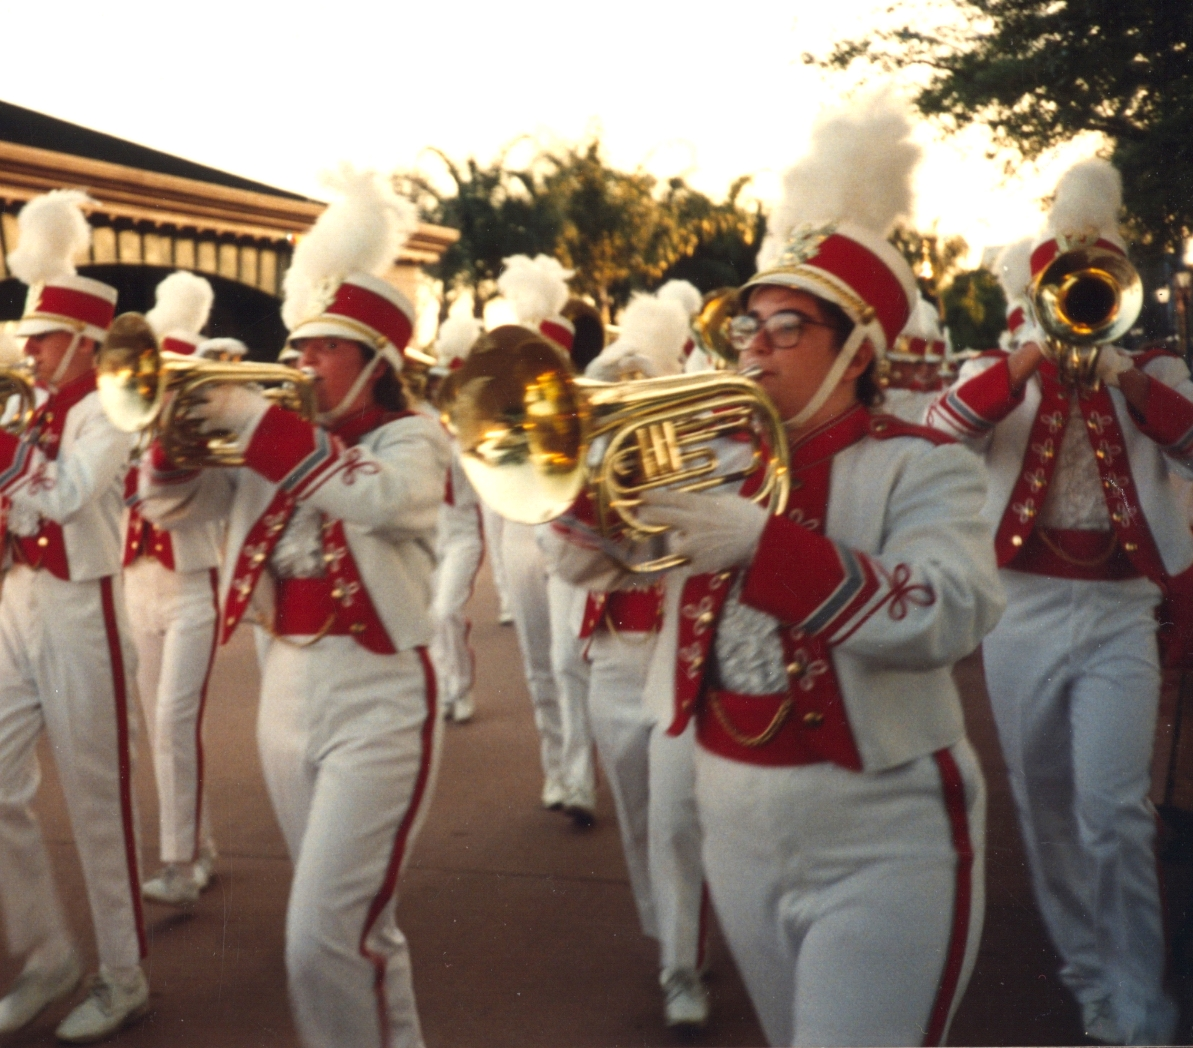 Marching Epcot together. Me, at left, and Amanda at right. 1993